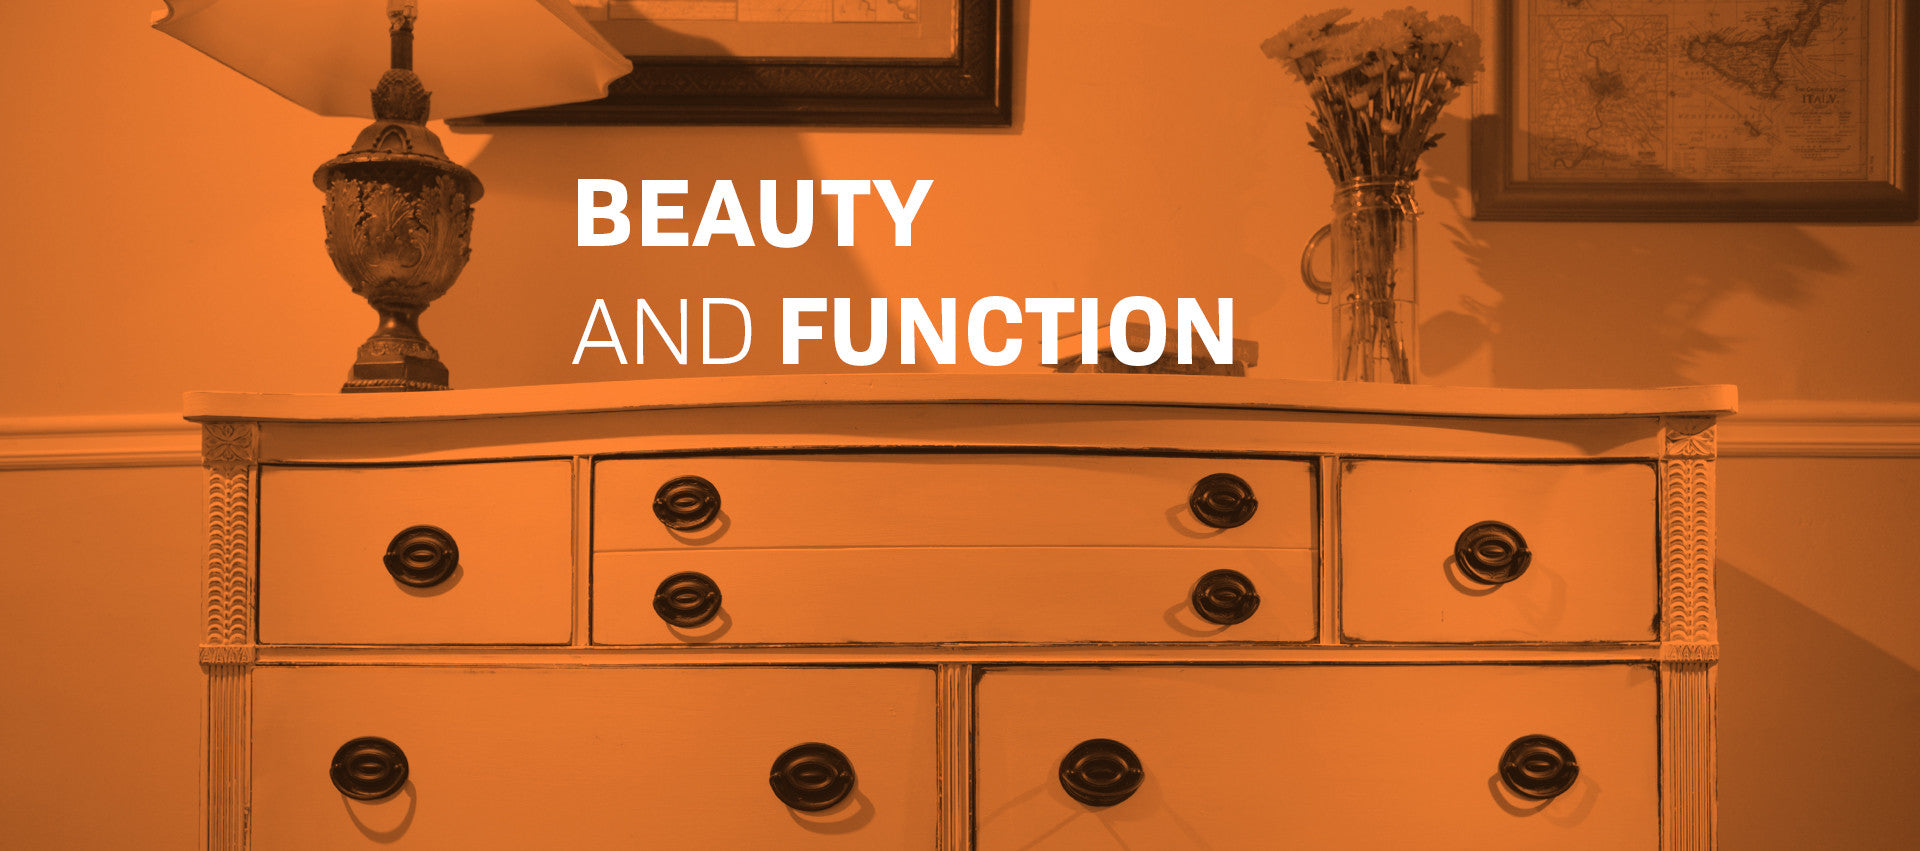 About Decor Furnishing